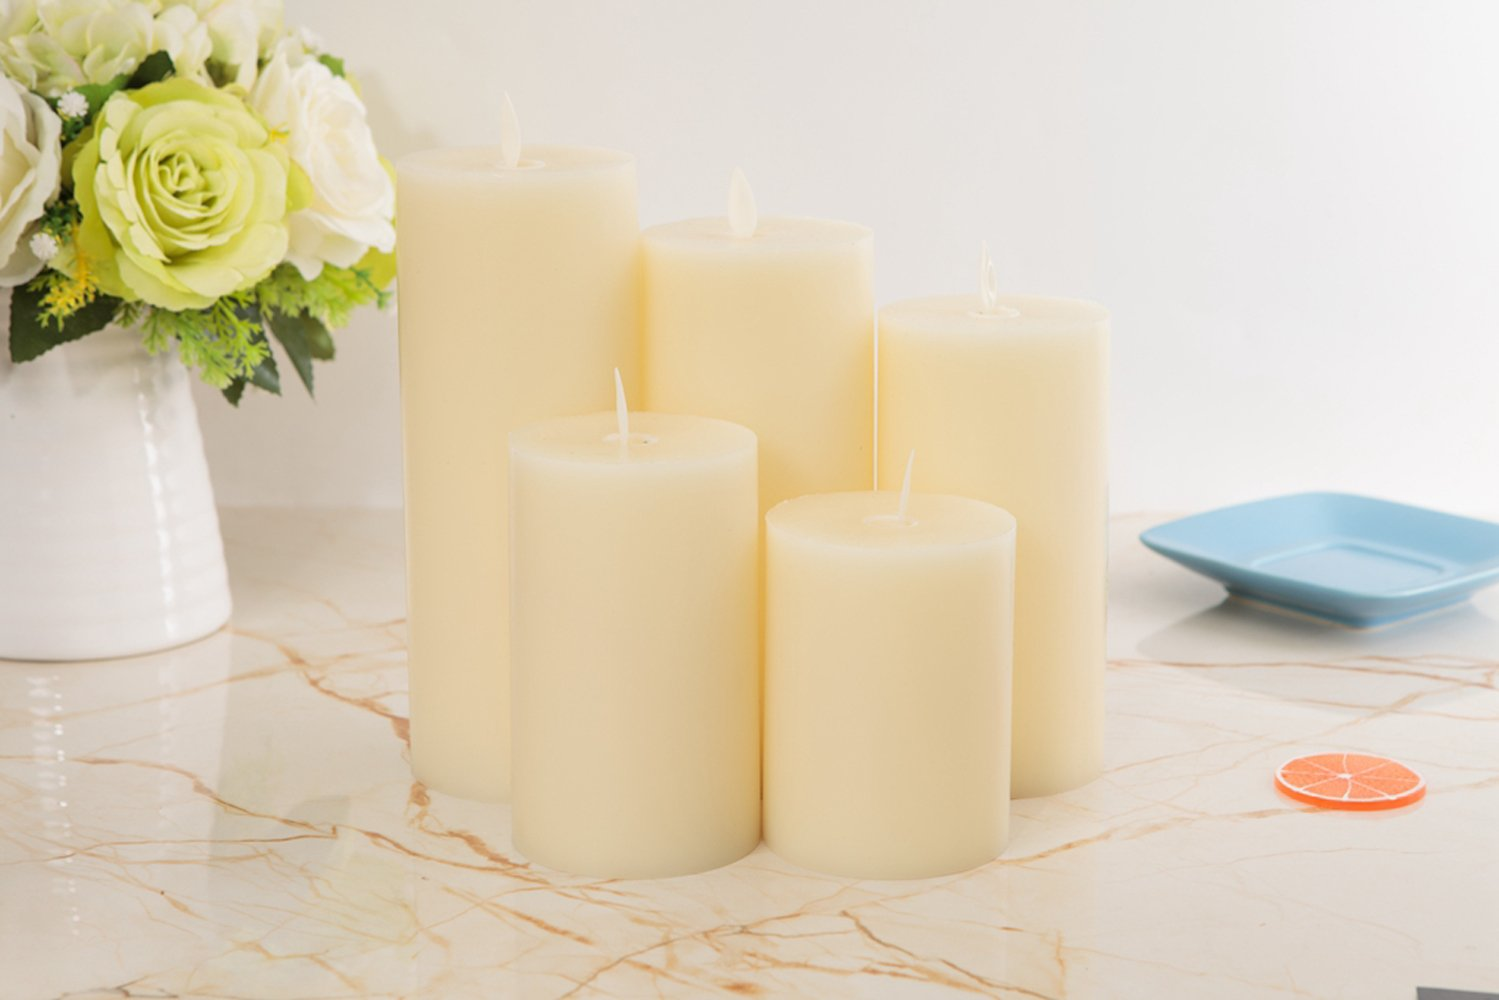 PJS 5-Pack Christmas Paraffin Flats Candles, Flickering Flameless Candles Set with Charging (Included USB),Ivory Wax Pillar Bathroom, Kitchen, Home Décor Battery Powered, Reusable, Multiple Sizes